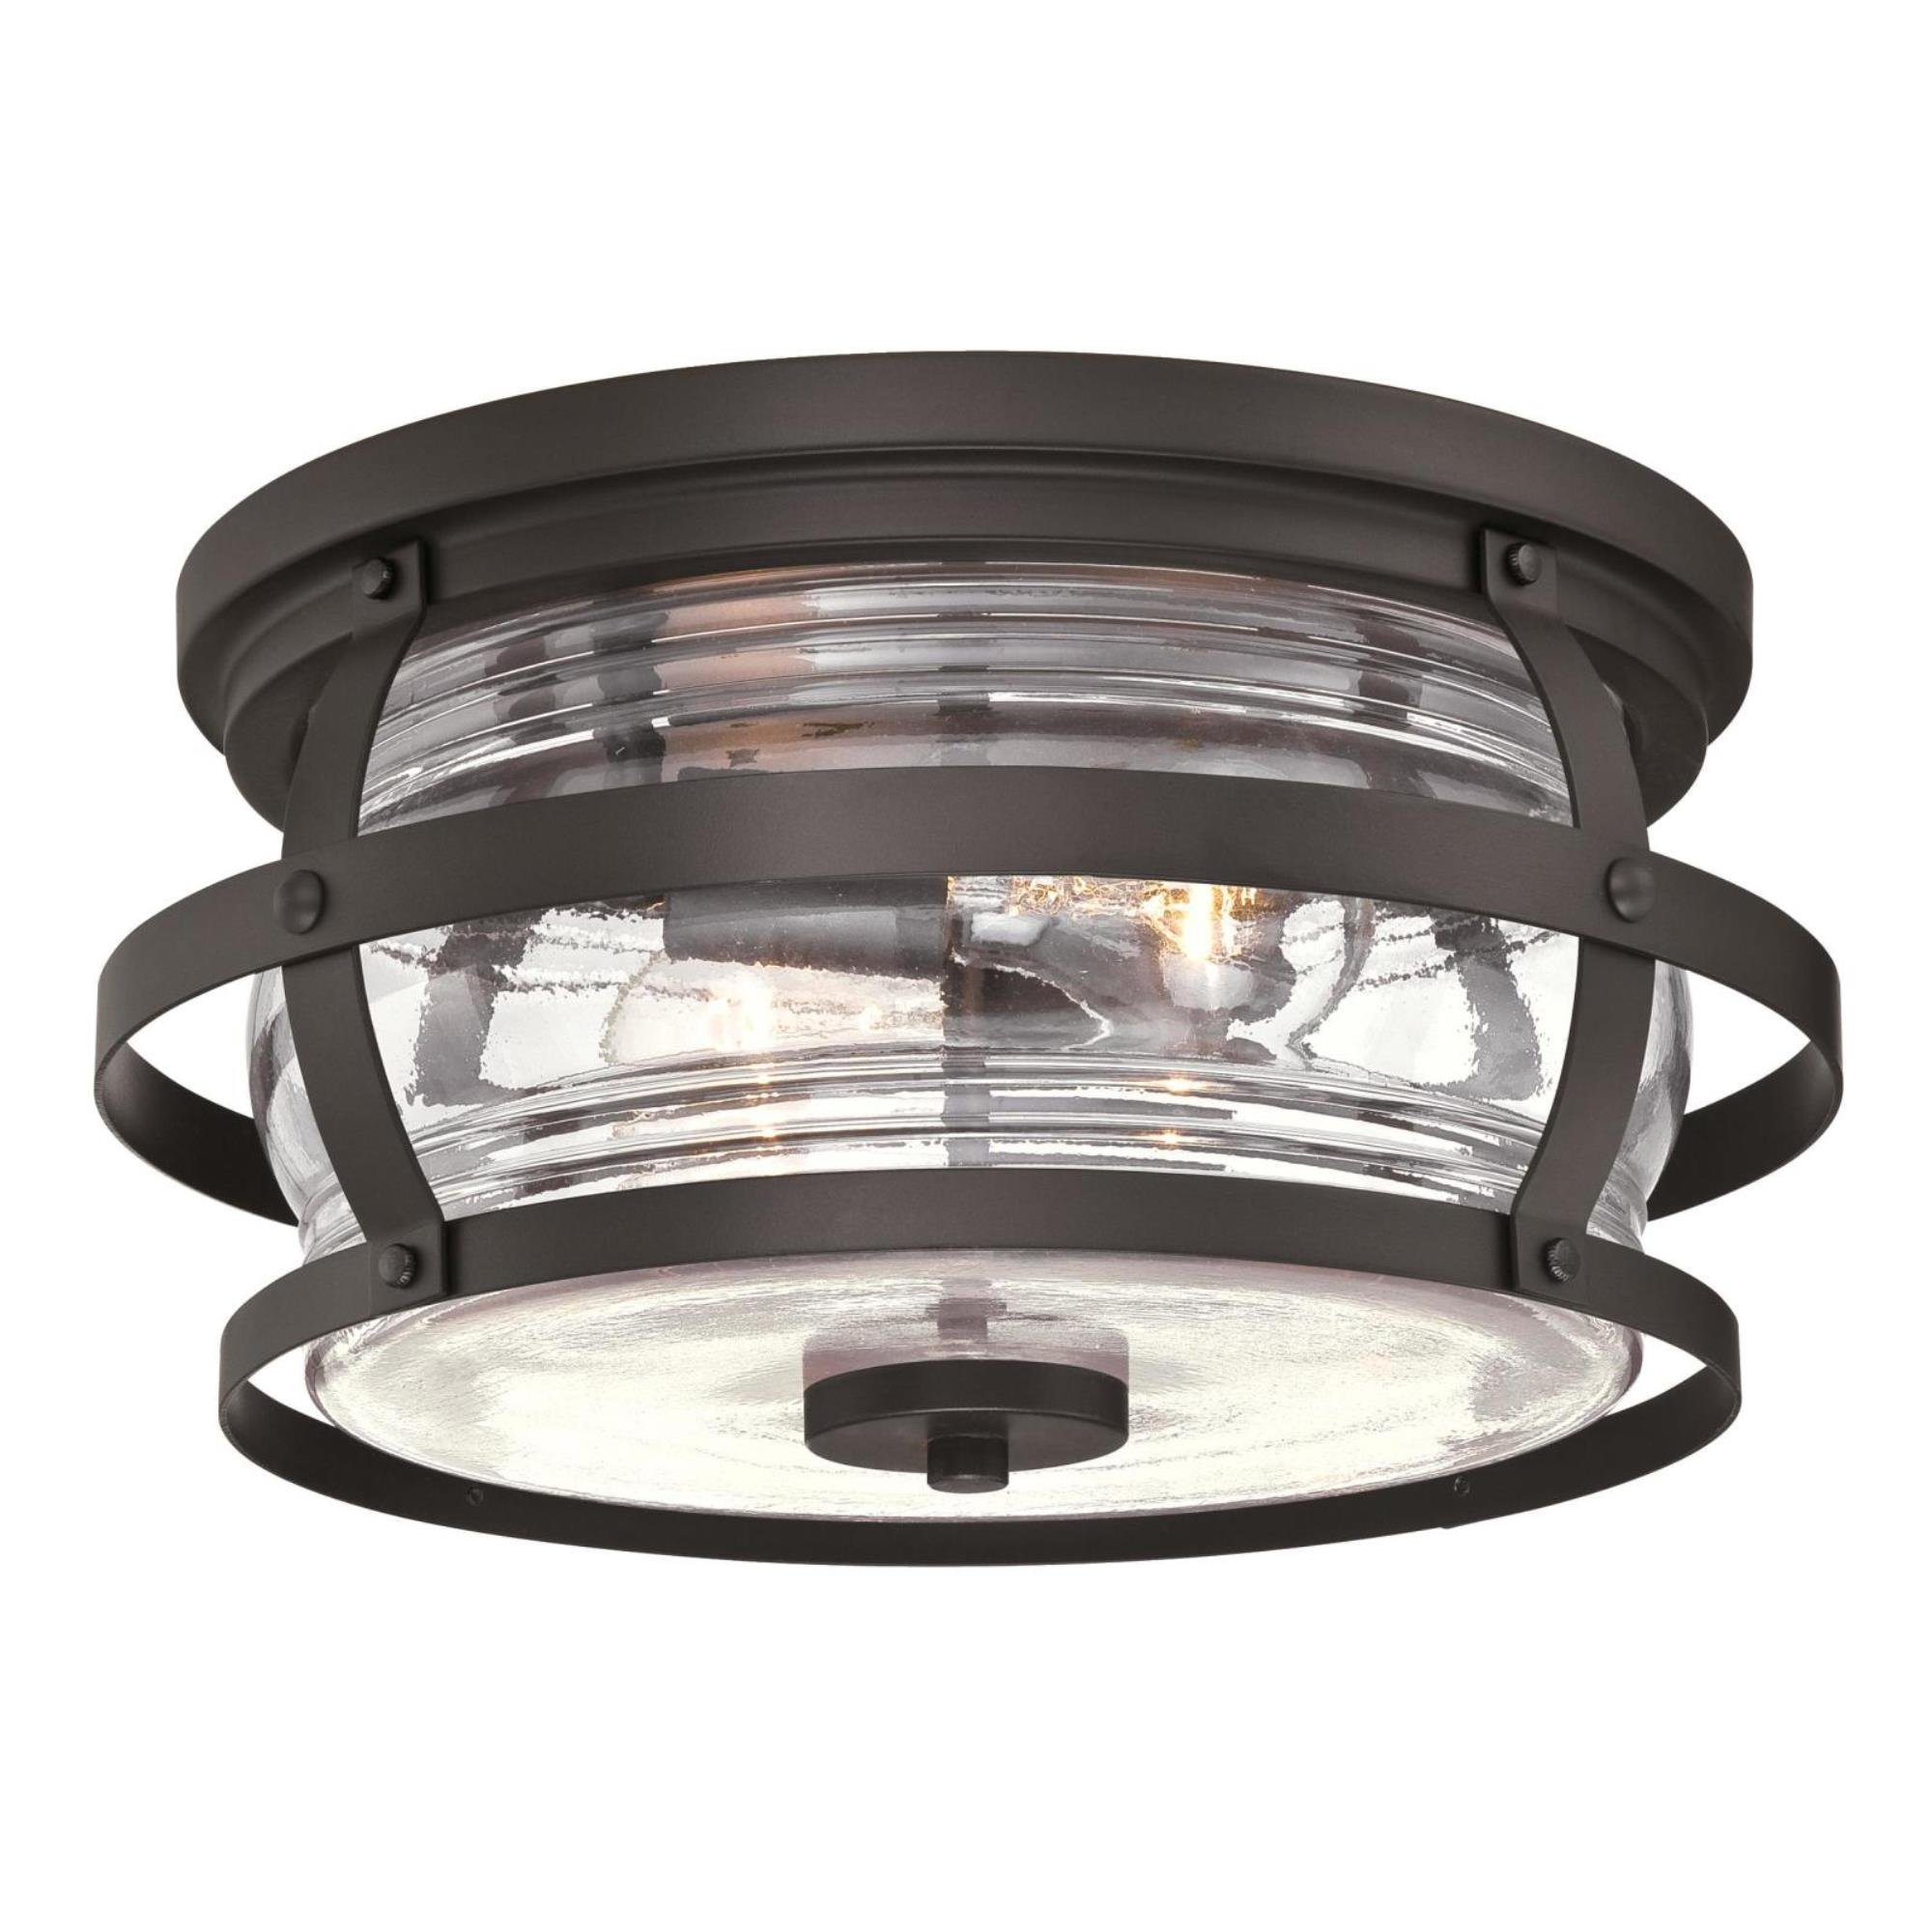 Westinghouse Lighting 6359500 Weatherby Two-Light Flush-Mount, Weathered Bronze Finish with Clear Glass Outdoor Ceiling Fixture,